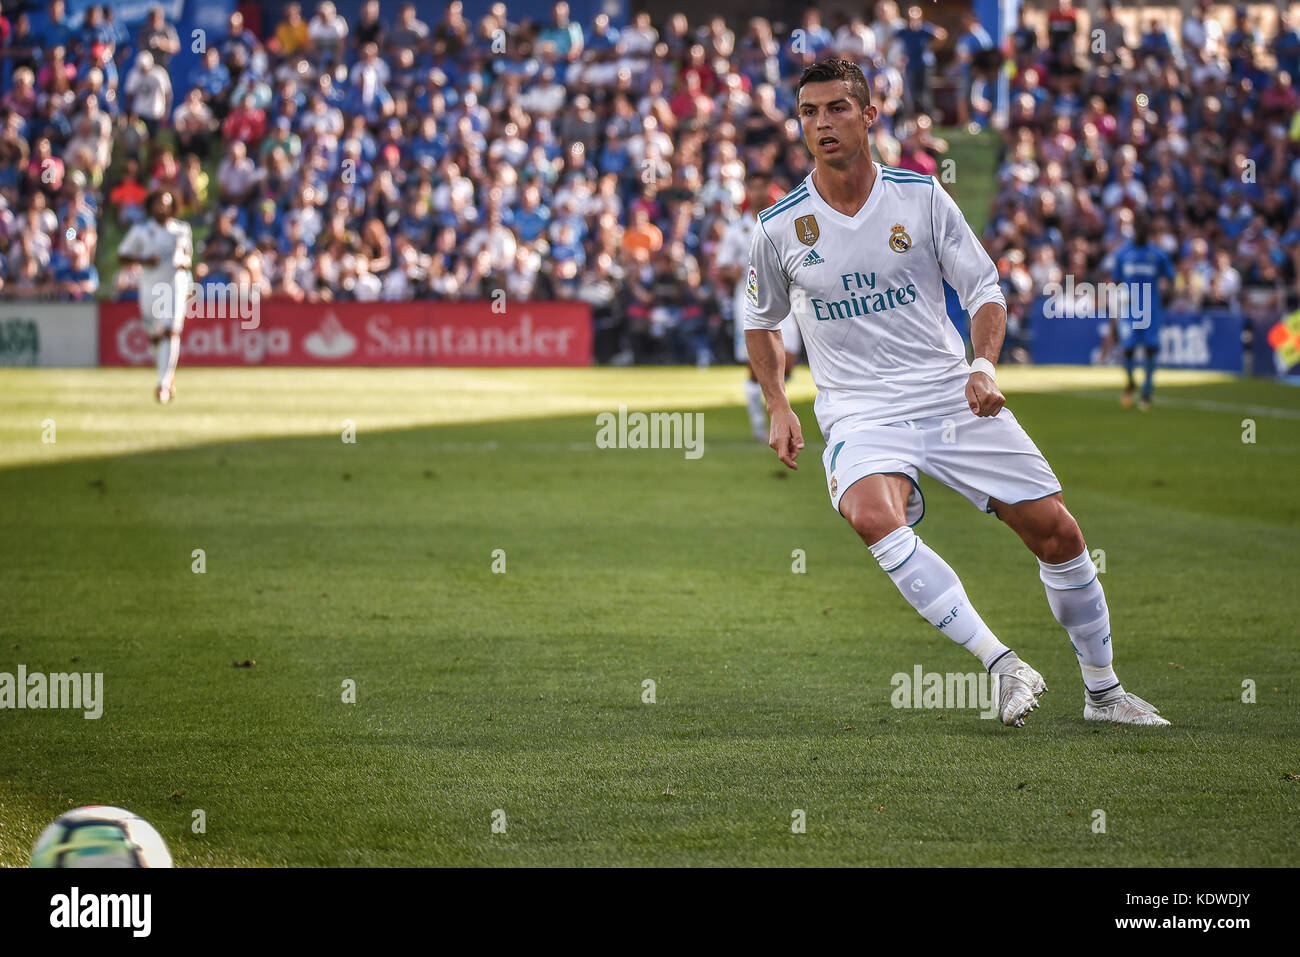 1 In Madrid Stock Photos 1 In Madrid Stock Images Alamy # Muebles Getafe Butragueno